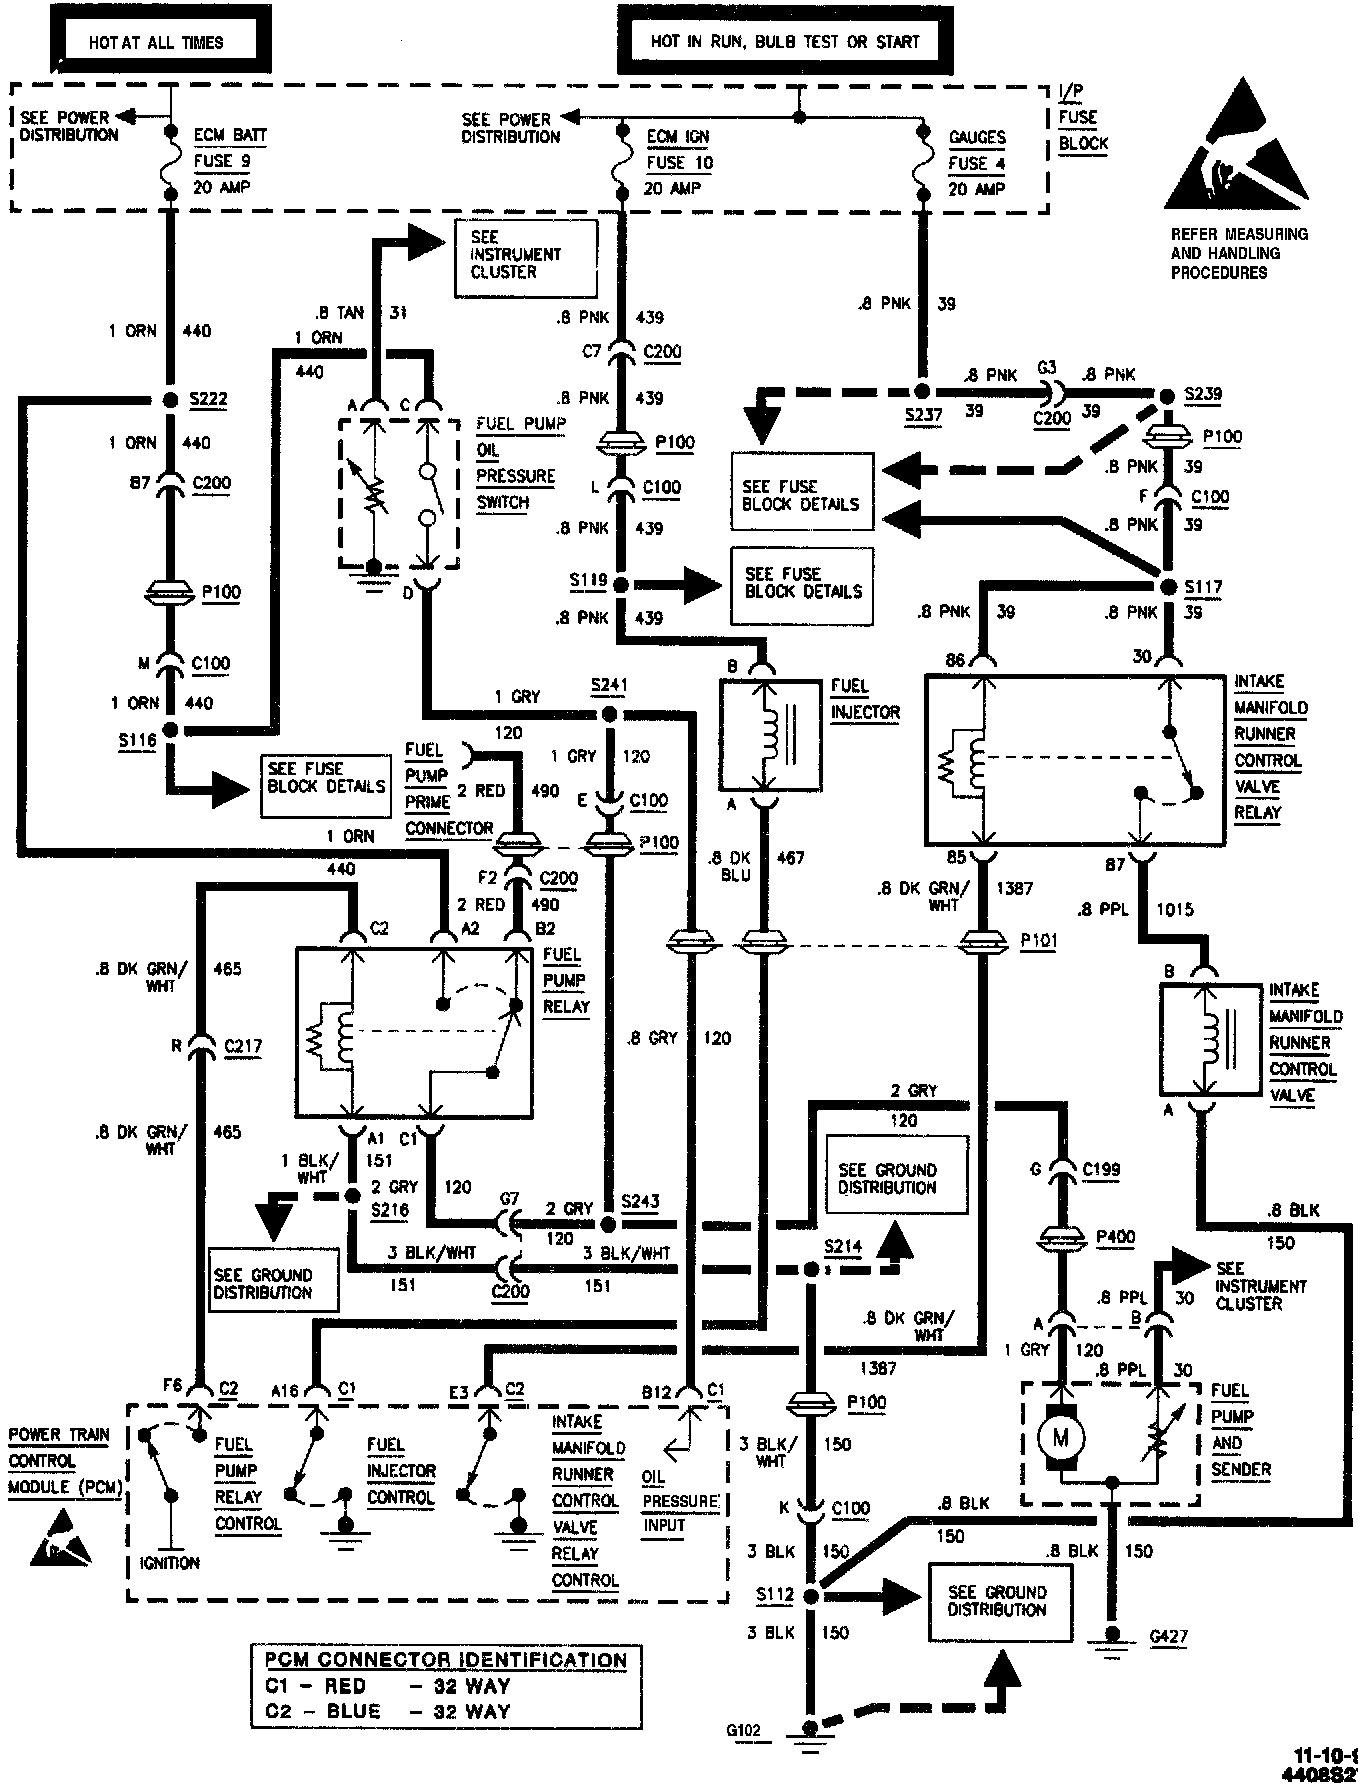 Chevy S10 Fuse Diagram On Wiring Harness For 1995 Nissan